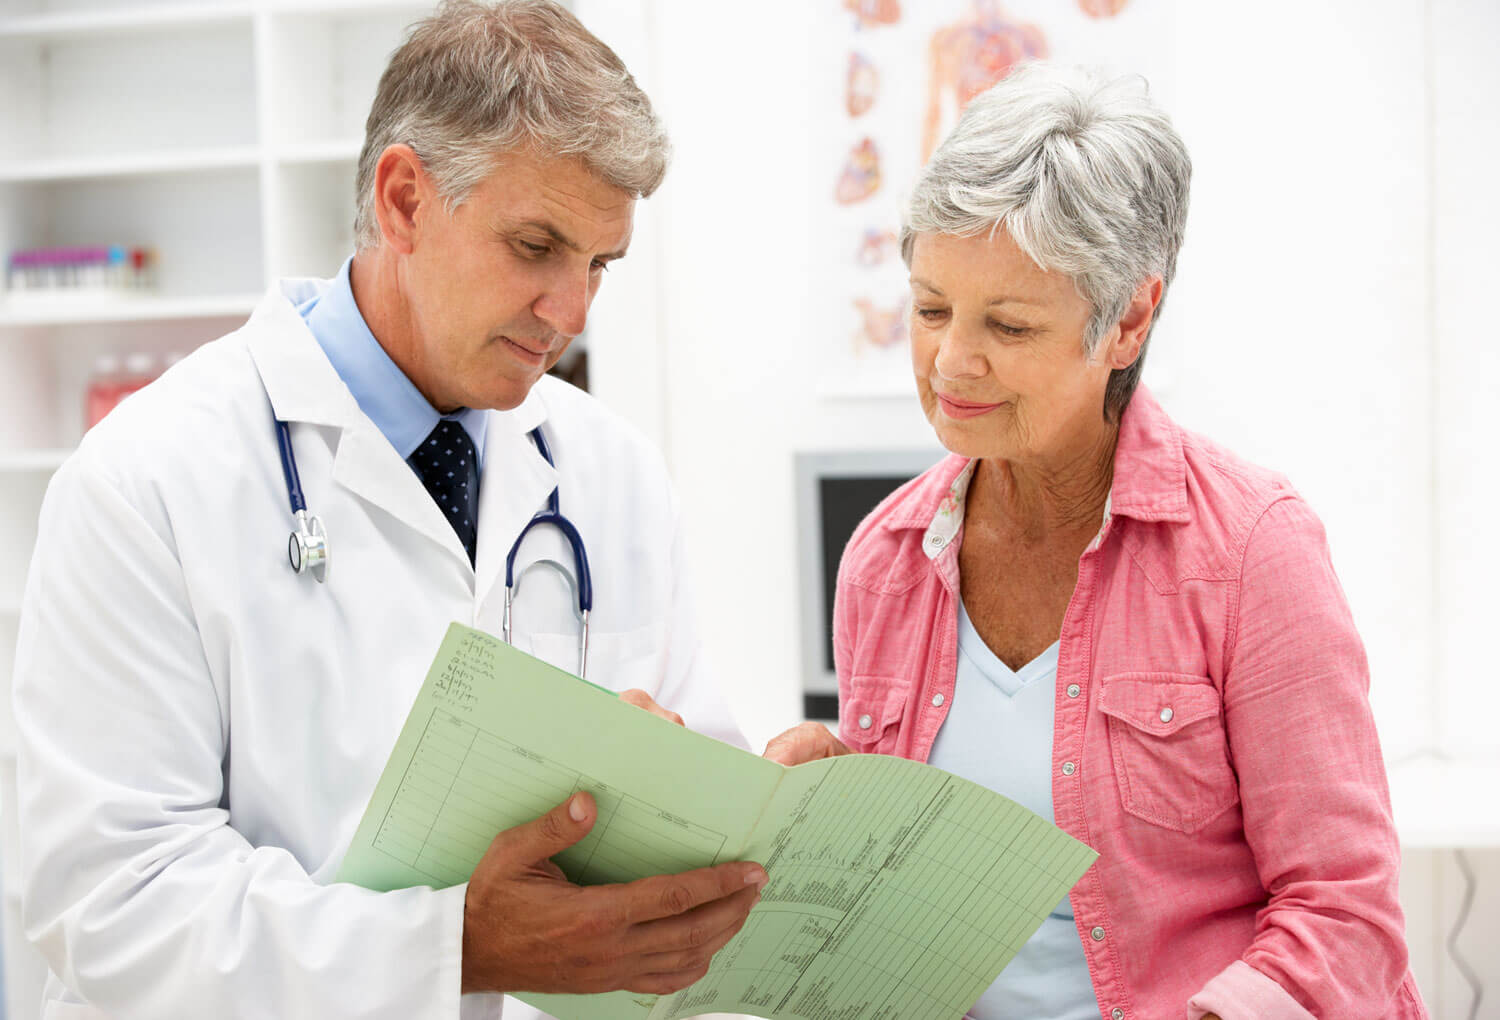 Doctor with patient going over her chart